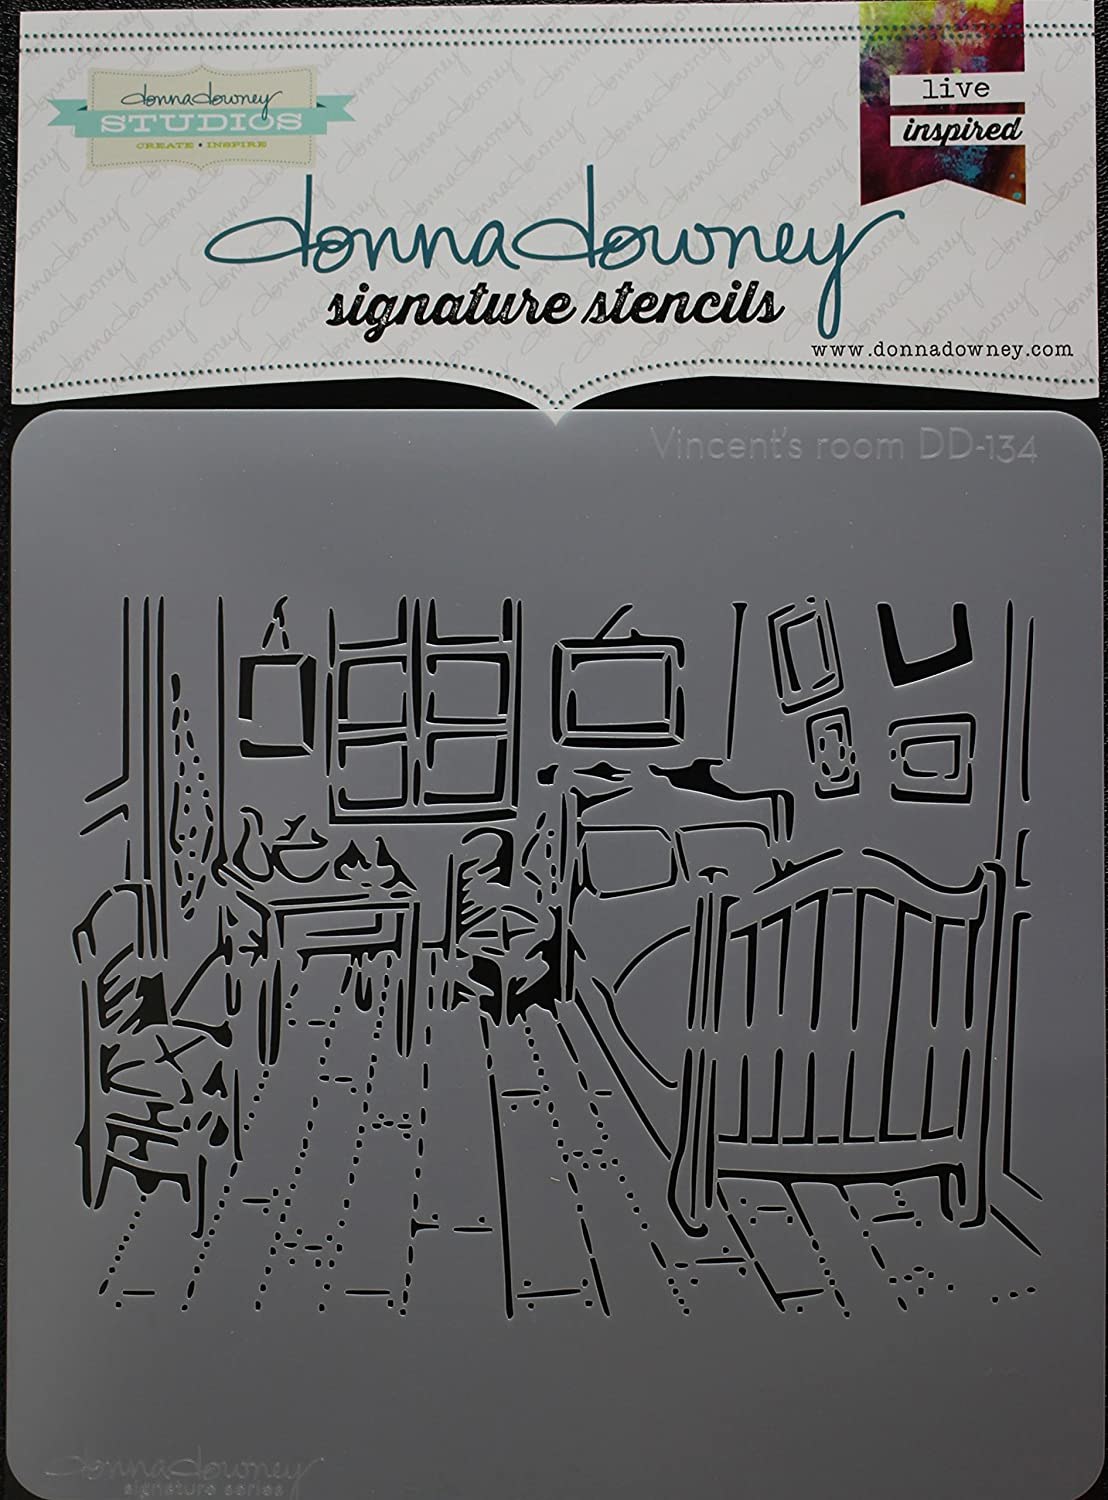 Donna Downey Stencils DD-134 Signature Stencils 8.5X8.5-Vincents Room